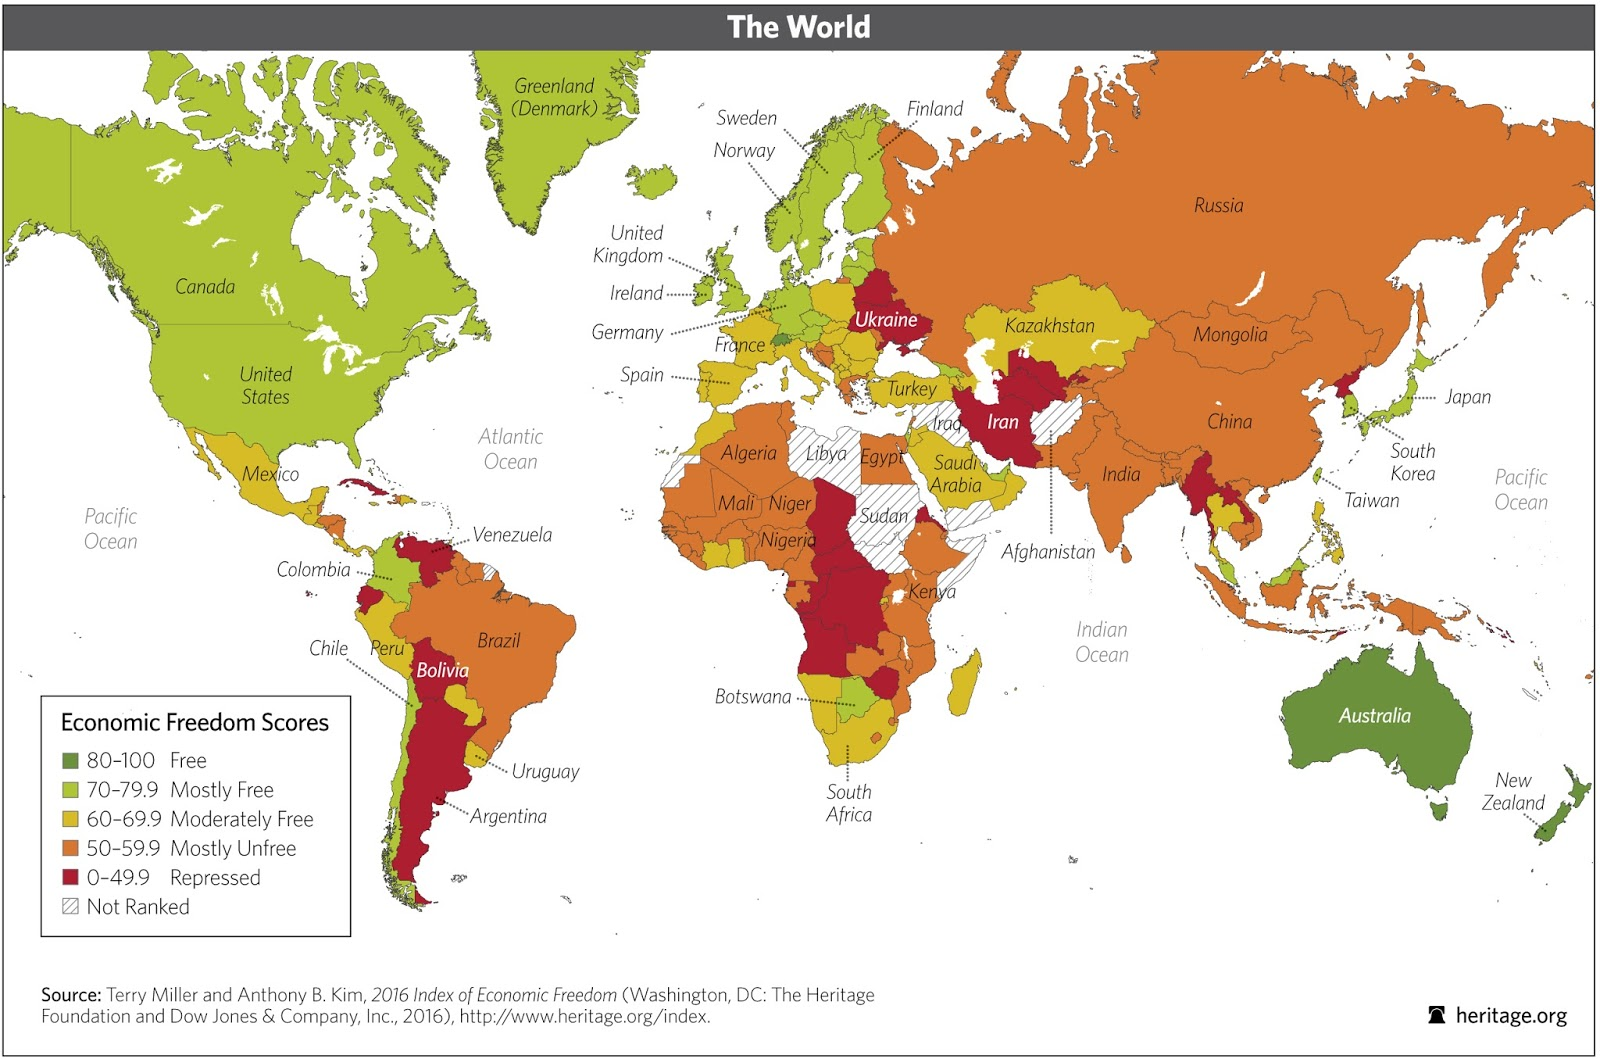 World Economic Freedom Scores, 2016